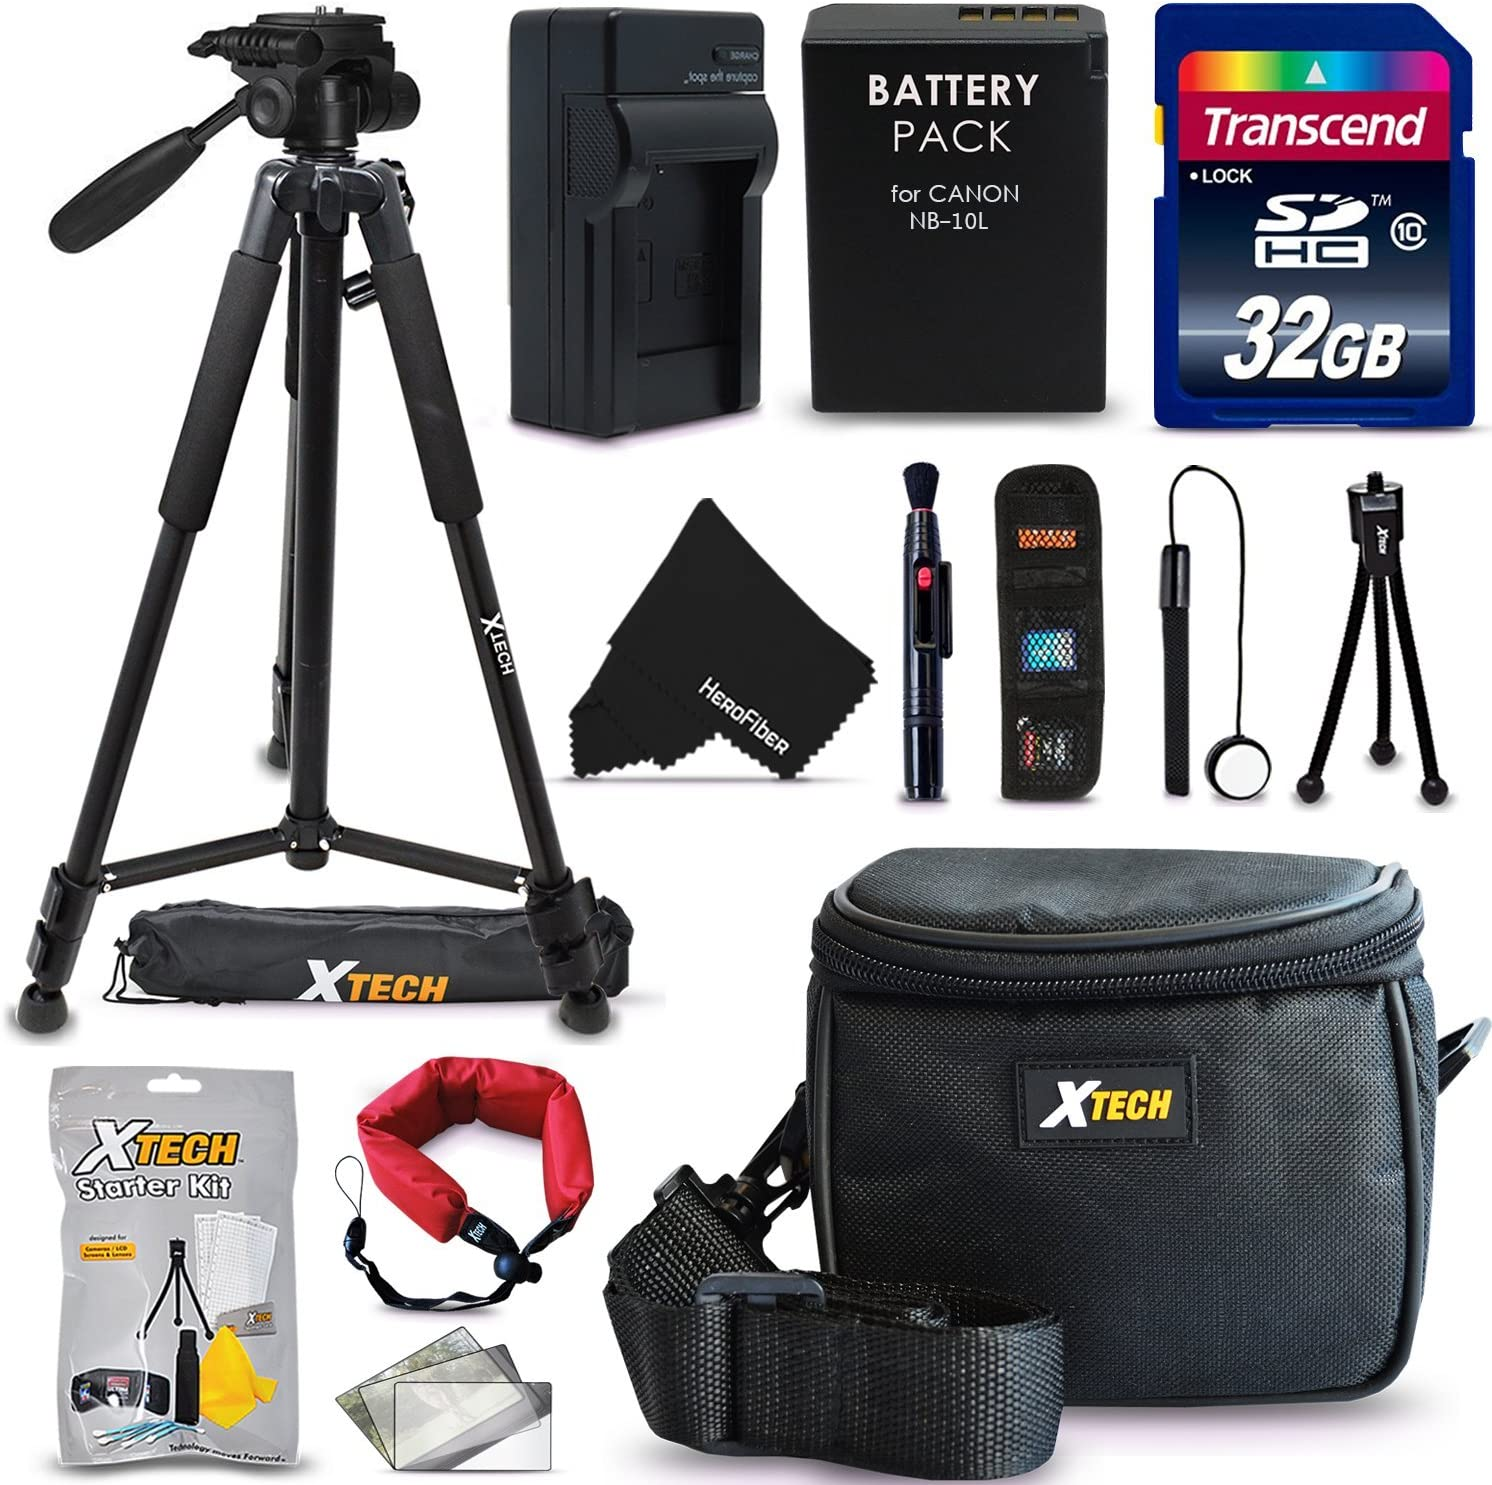 NB-10L // NB10LBattery w//Charger Tripod More SX40 HS G16 Ultimate 20 Piece Accessory Kit for Canon Powershot SX60 HS SX50 HS G1X G15 Digital Cameras Includes: 32GB SD Memory Card